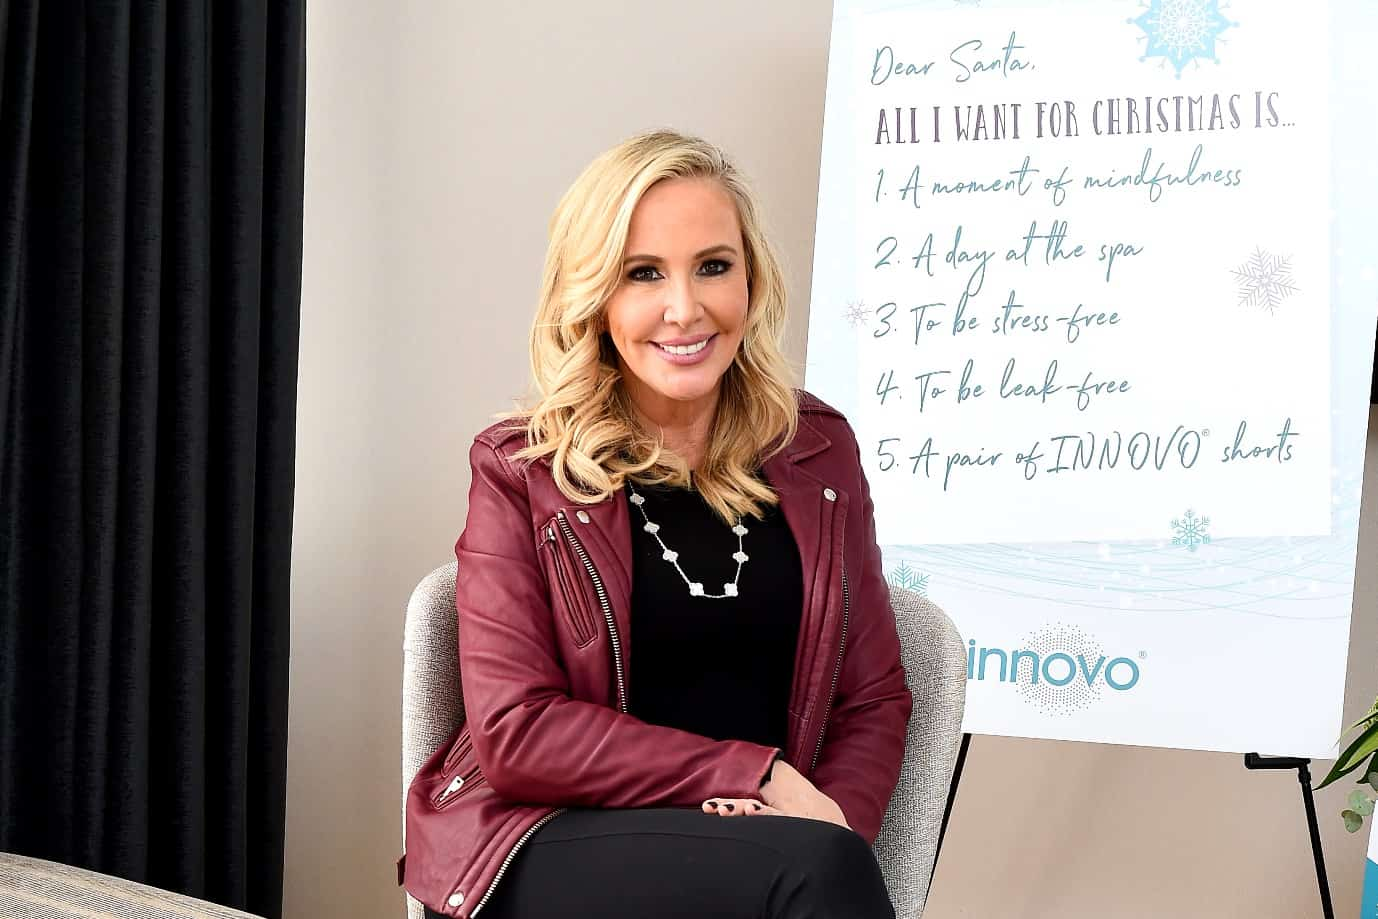 EXCLUSIVE: RHOC's Shannon Beador Opens Up About Feud With Kelly Dodd, Plus She Reacts to Being Called 'Overdramatic' by Tamra and Gina